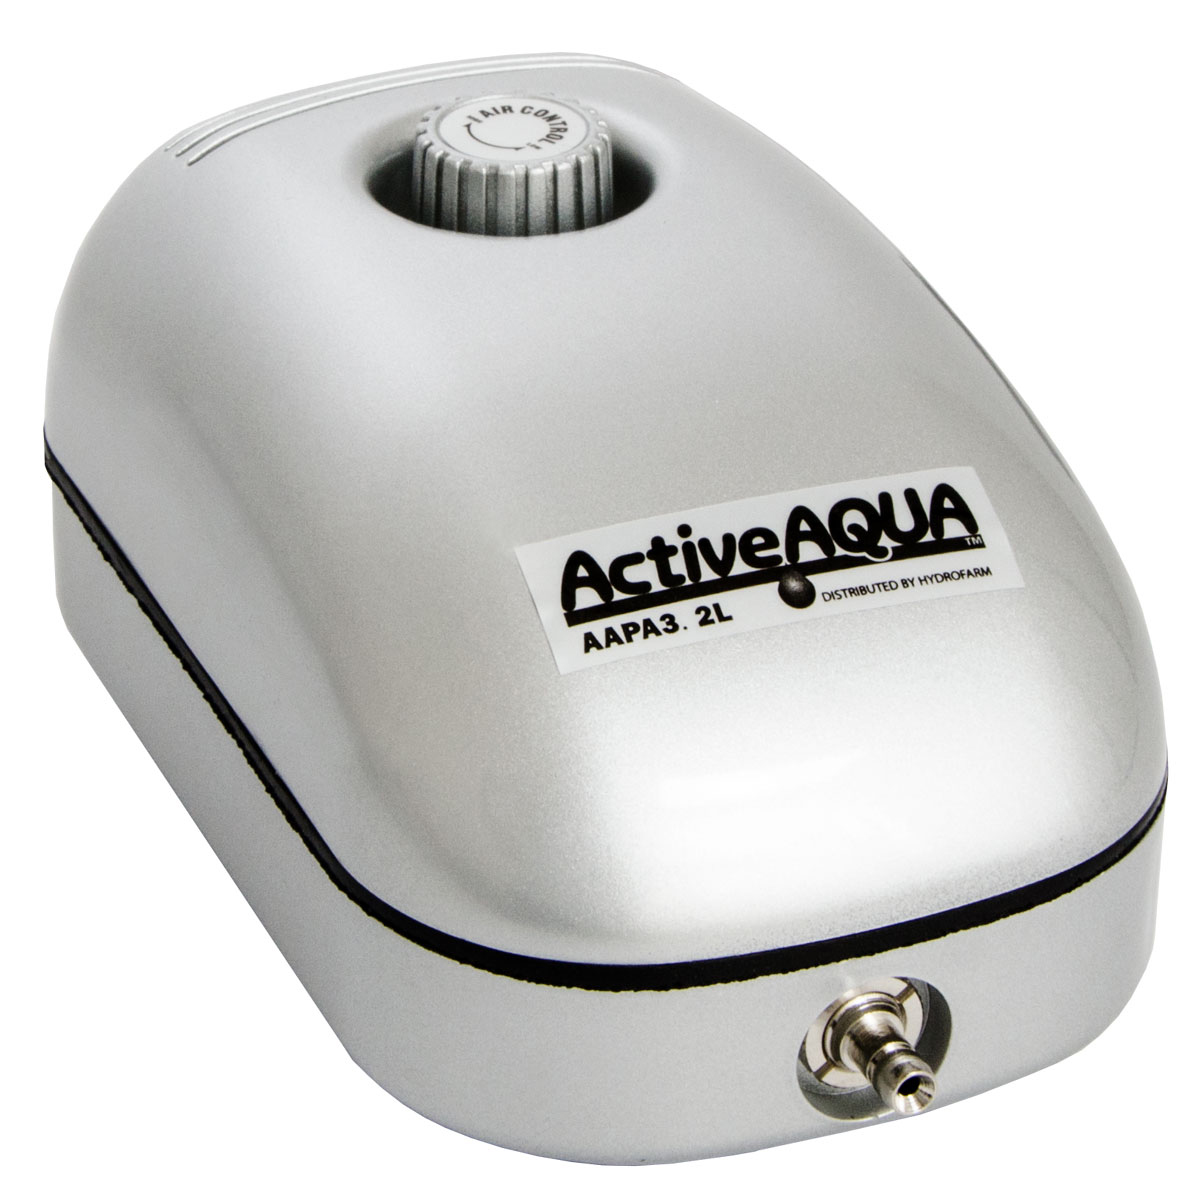 ACTIVEAQUA AIR PUMP AAPA3.2L